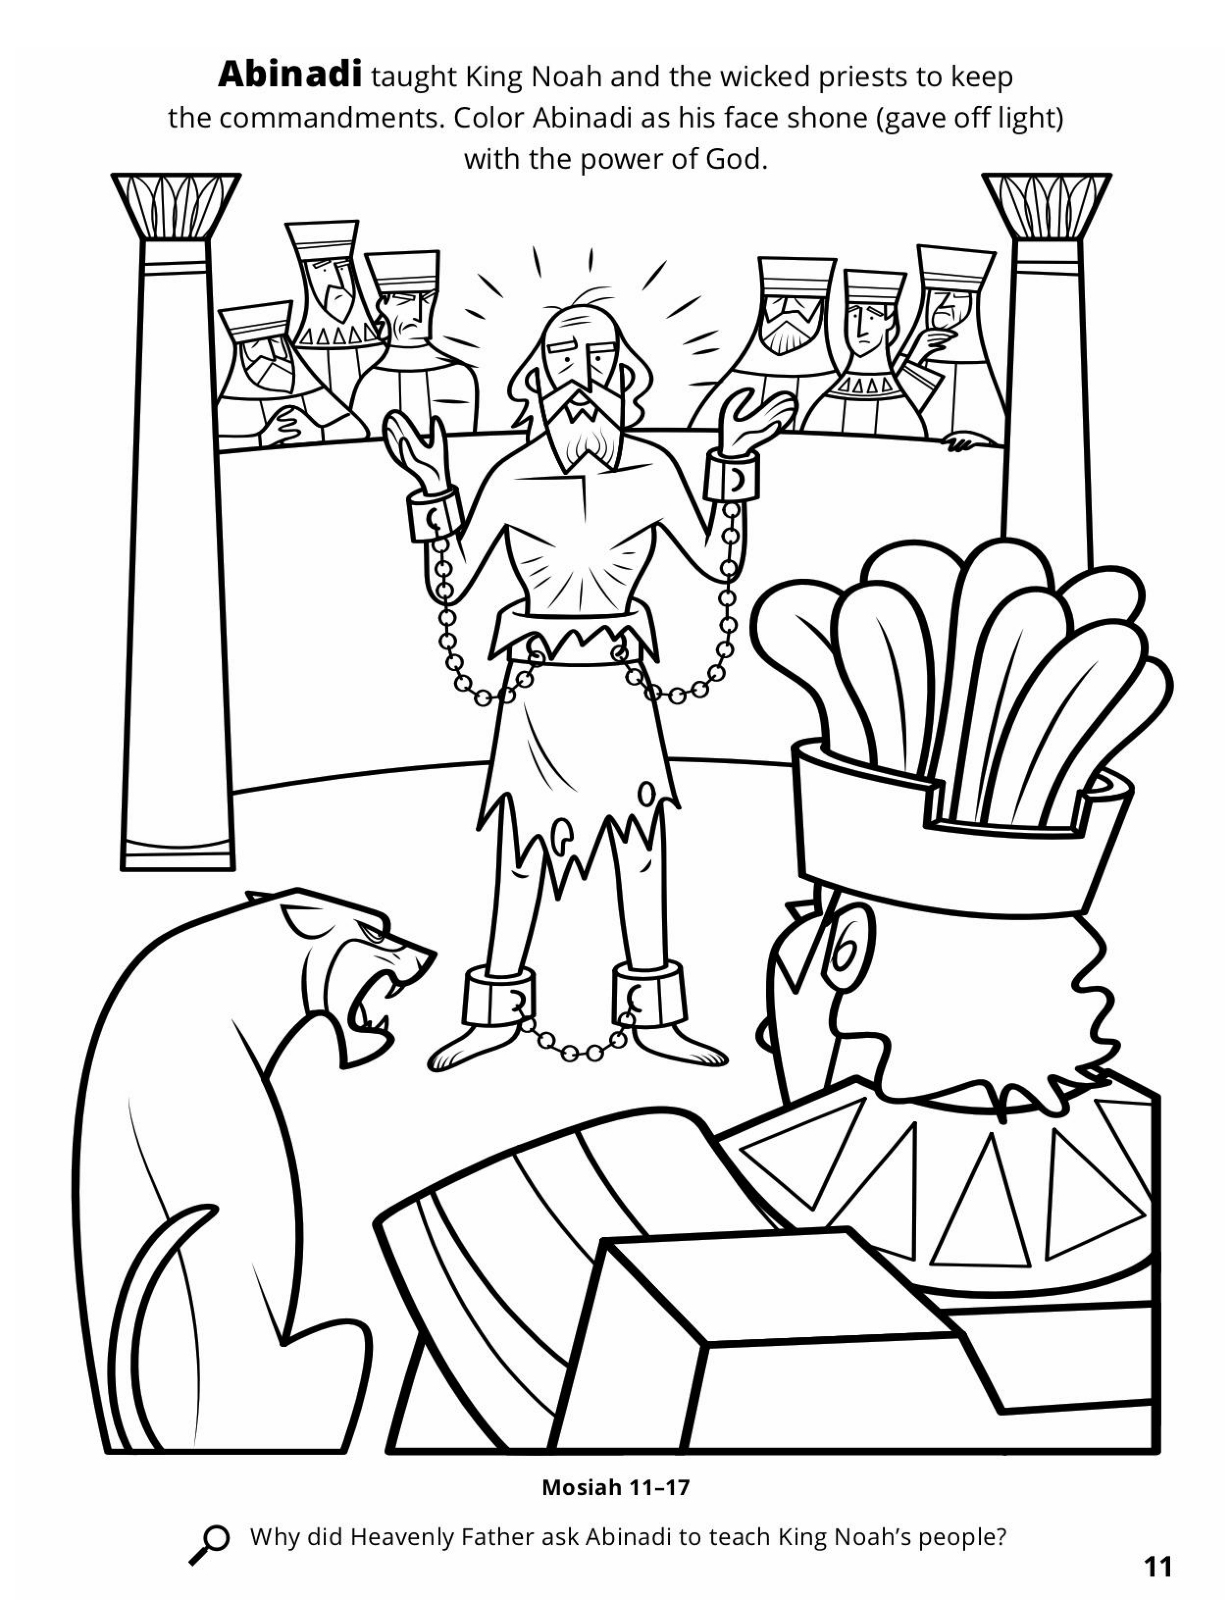 gods power coloring page quota is for almightyquot coloring page gods coloring page power